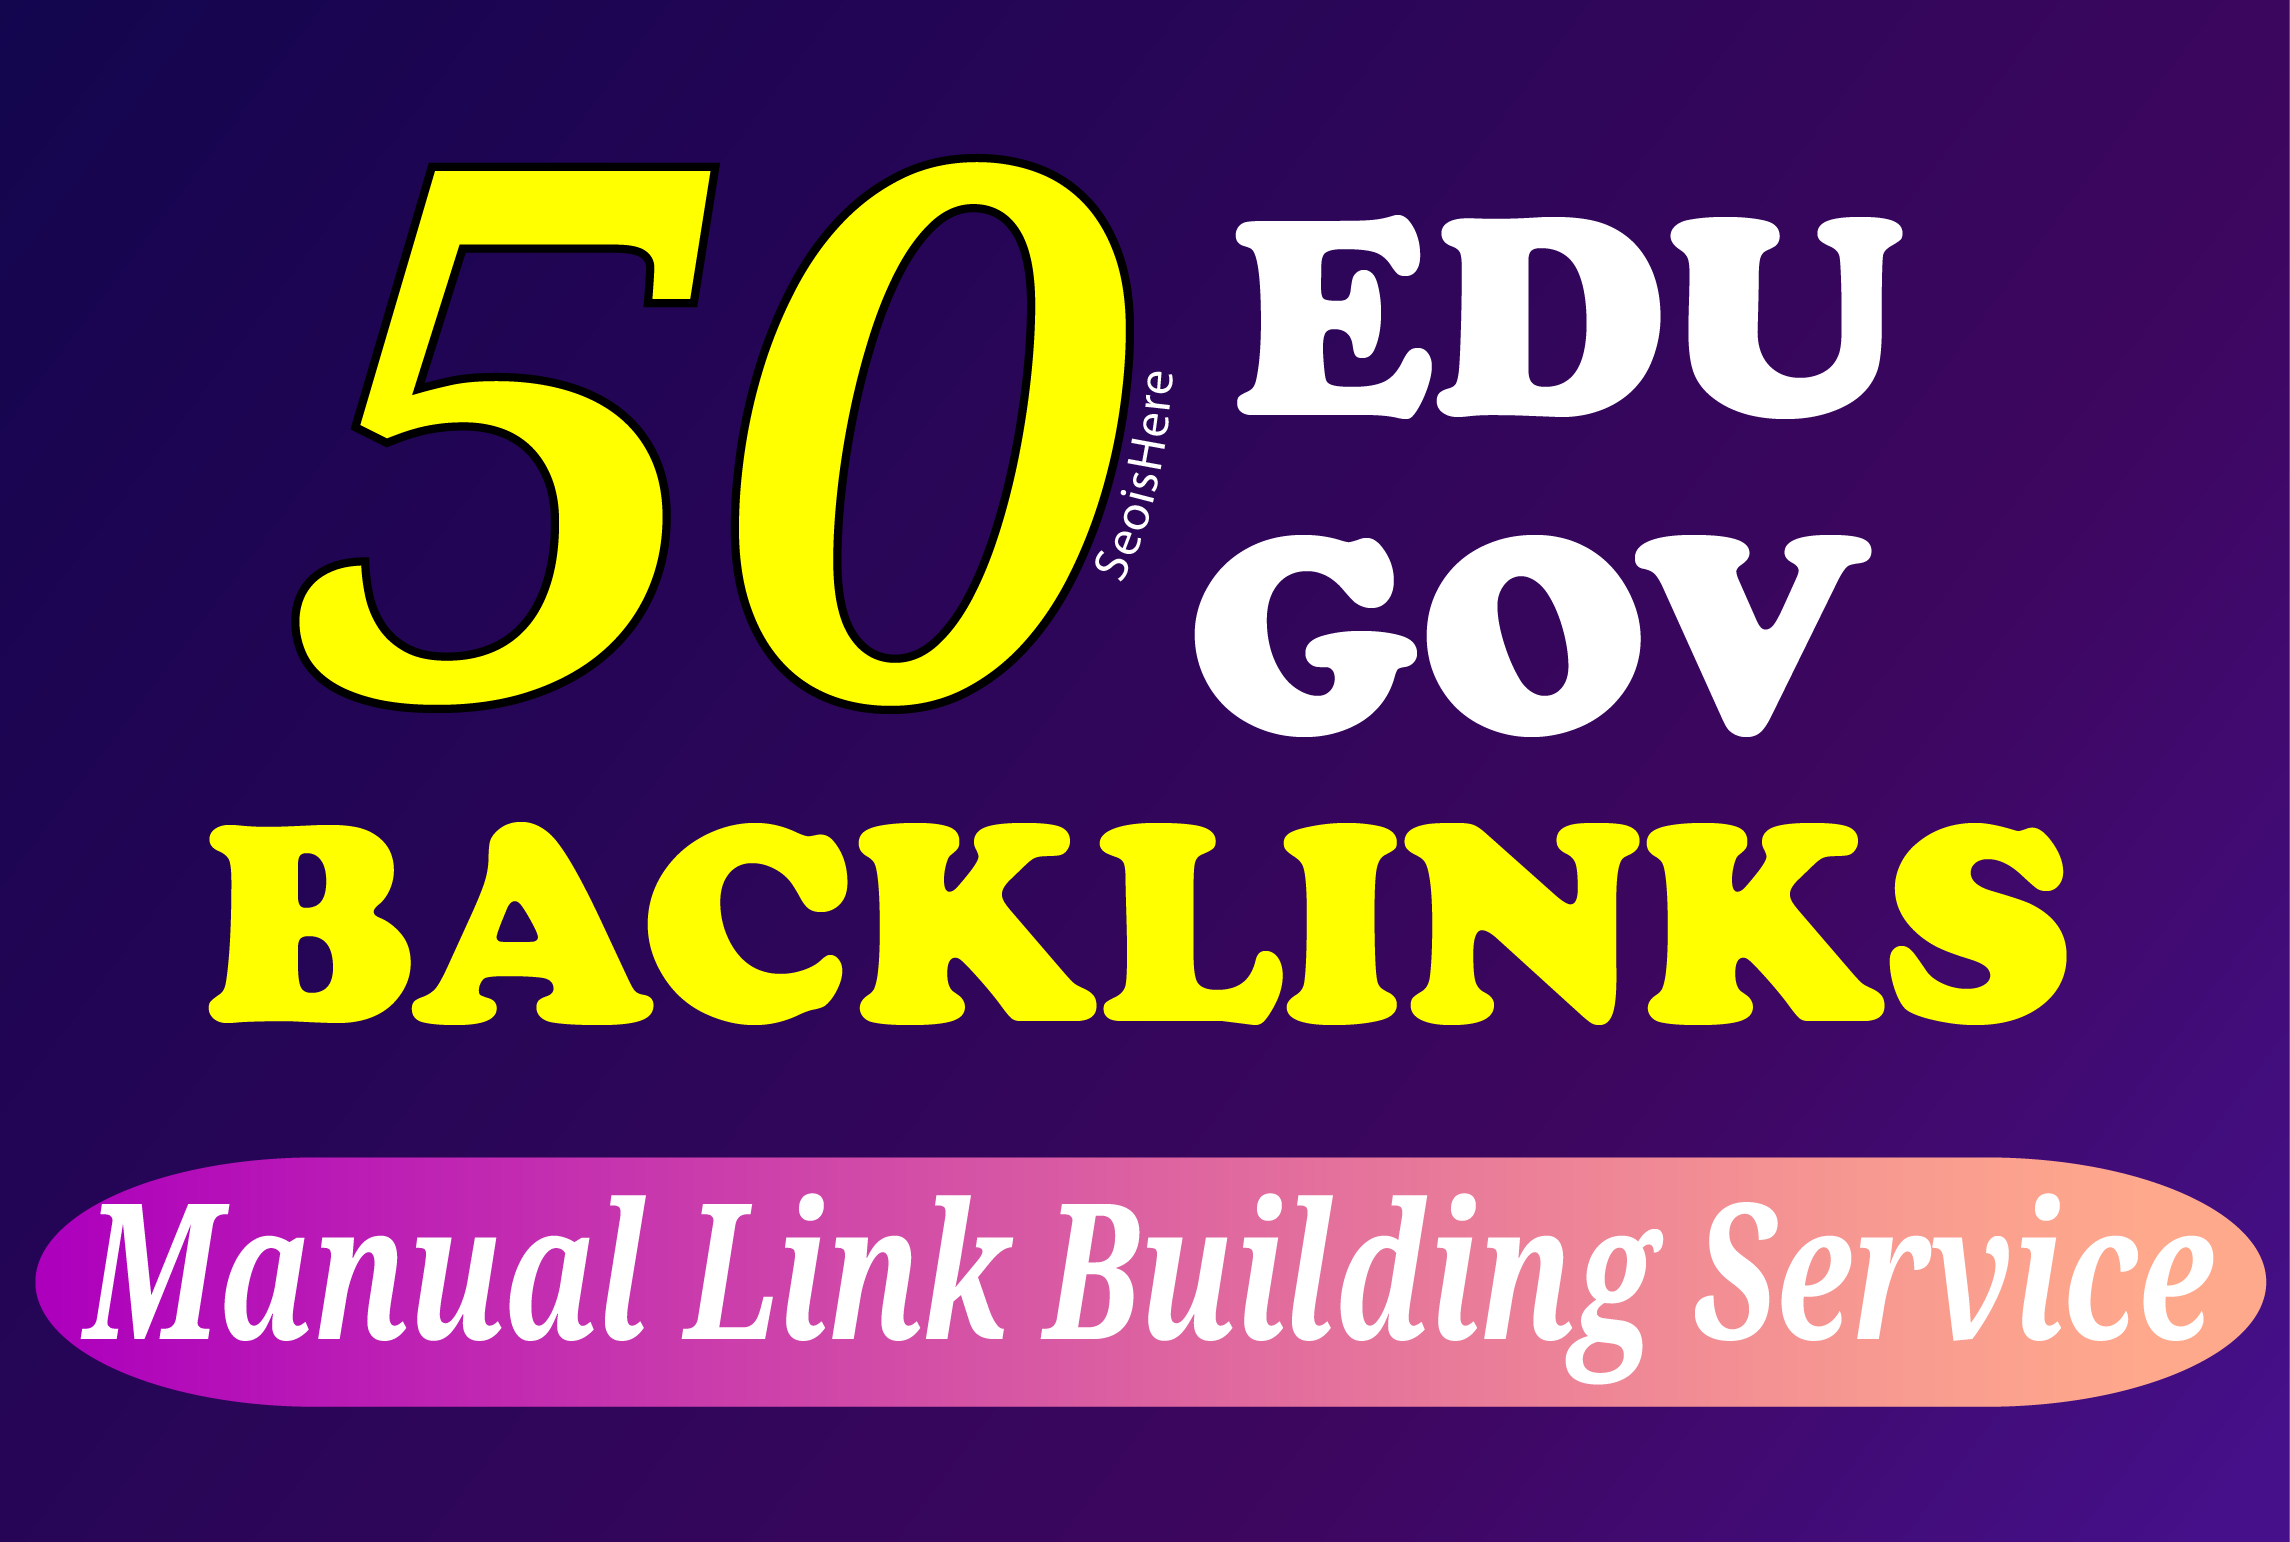 I will manually build 30 pr9 and 20 Edu/Gov backlinks white hat SEO link building